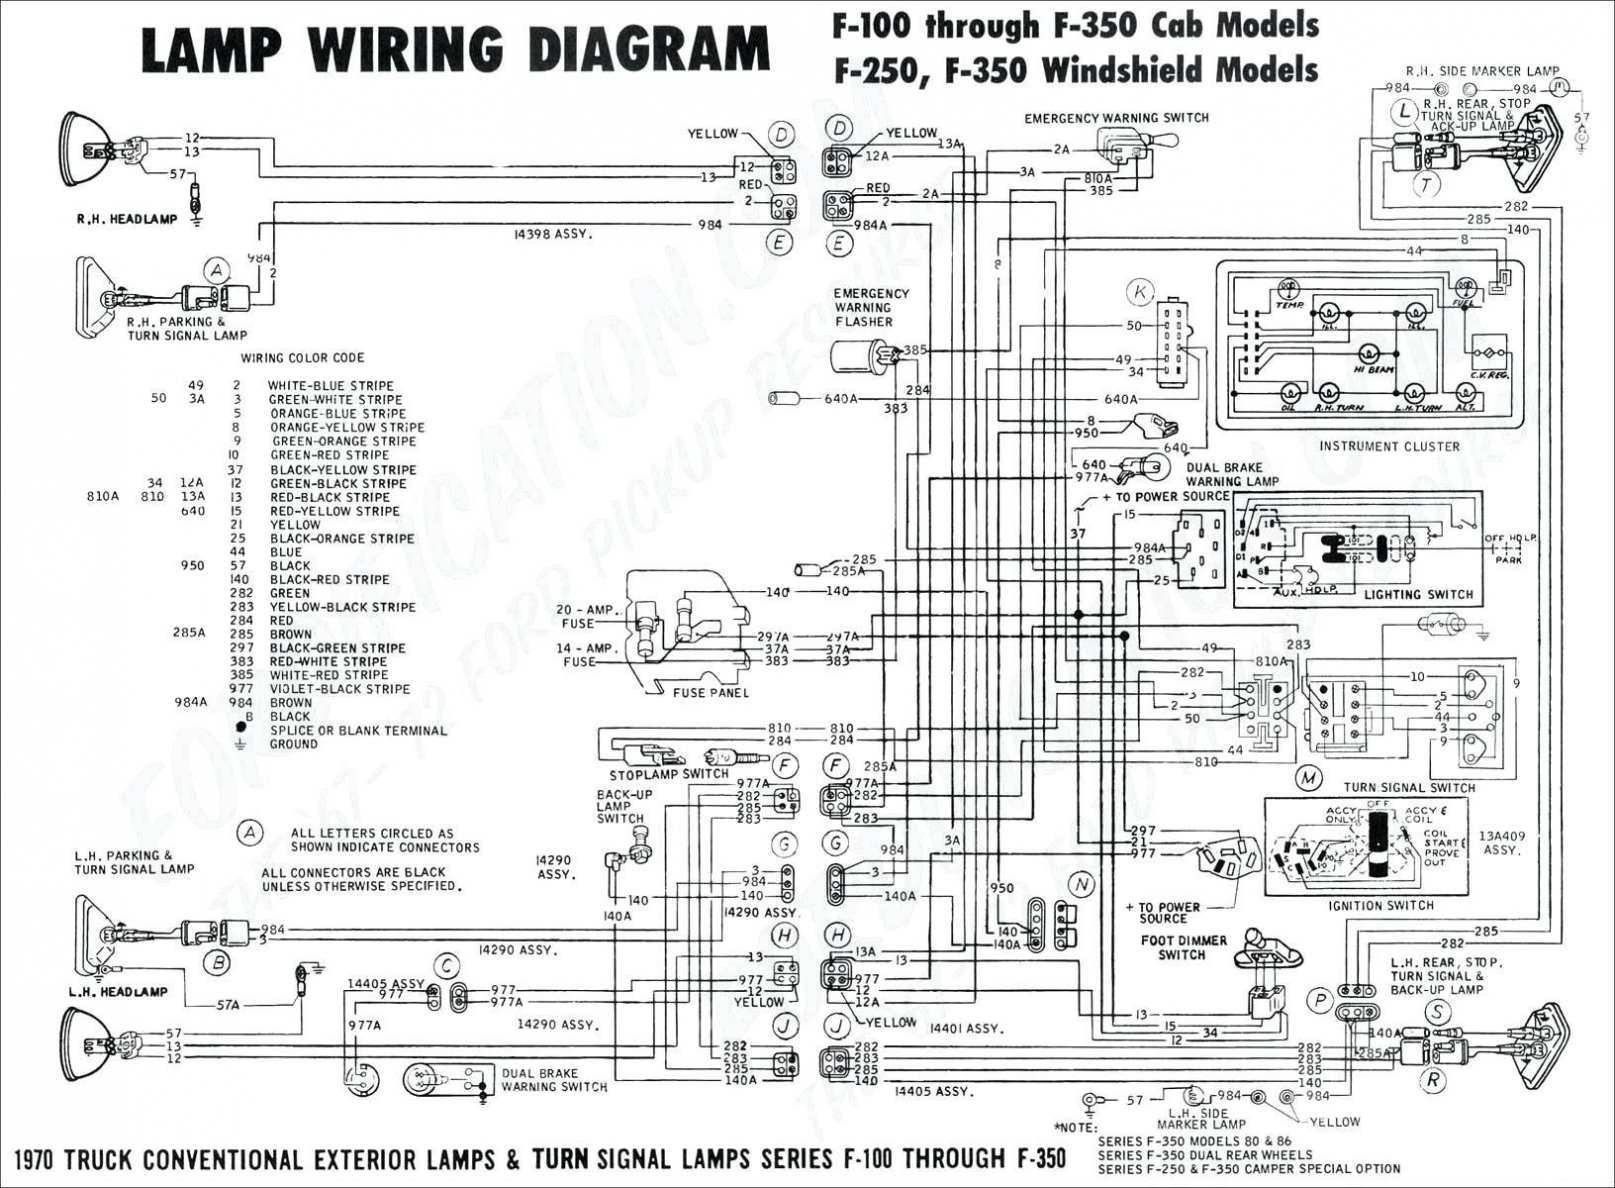 hight resolution of subaru legacy ecu wiring diagram hecho wire diagram databaseedko wiring diagram wiring diagram subaru legacy ecu